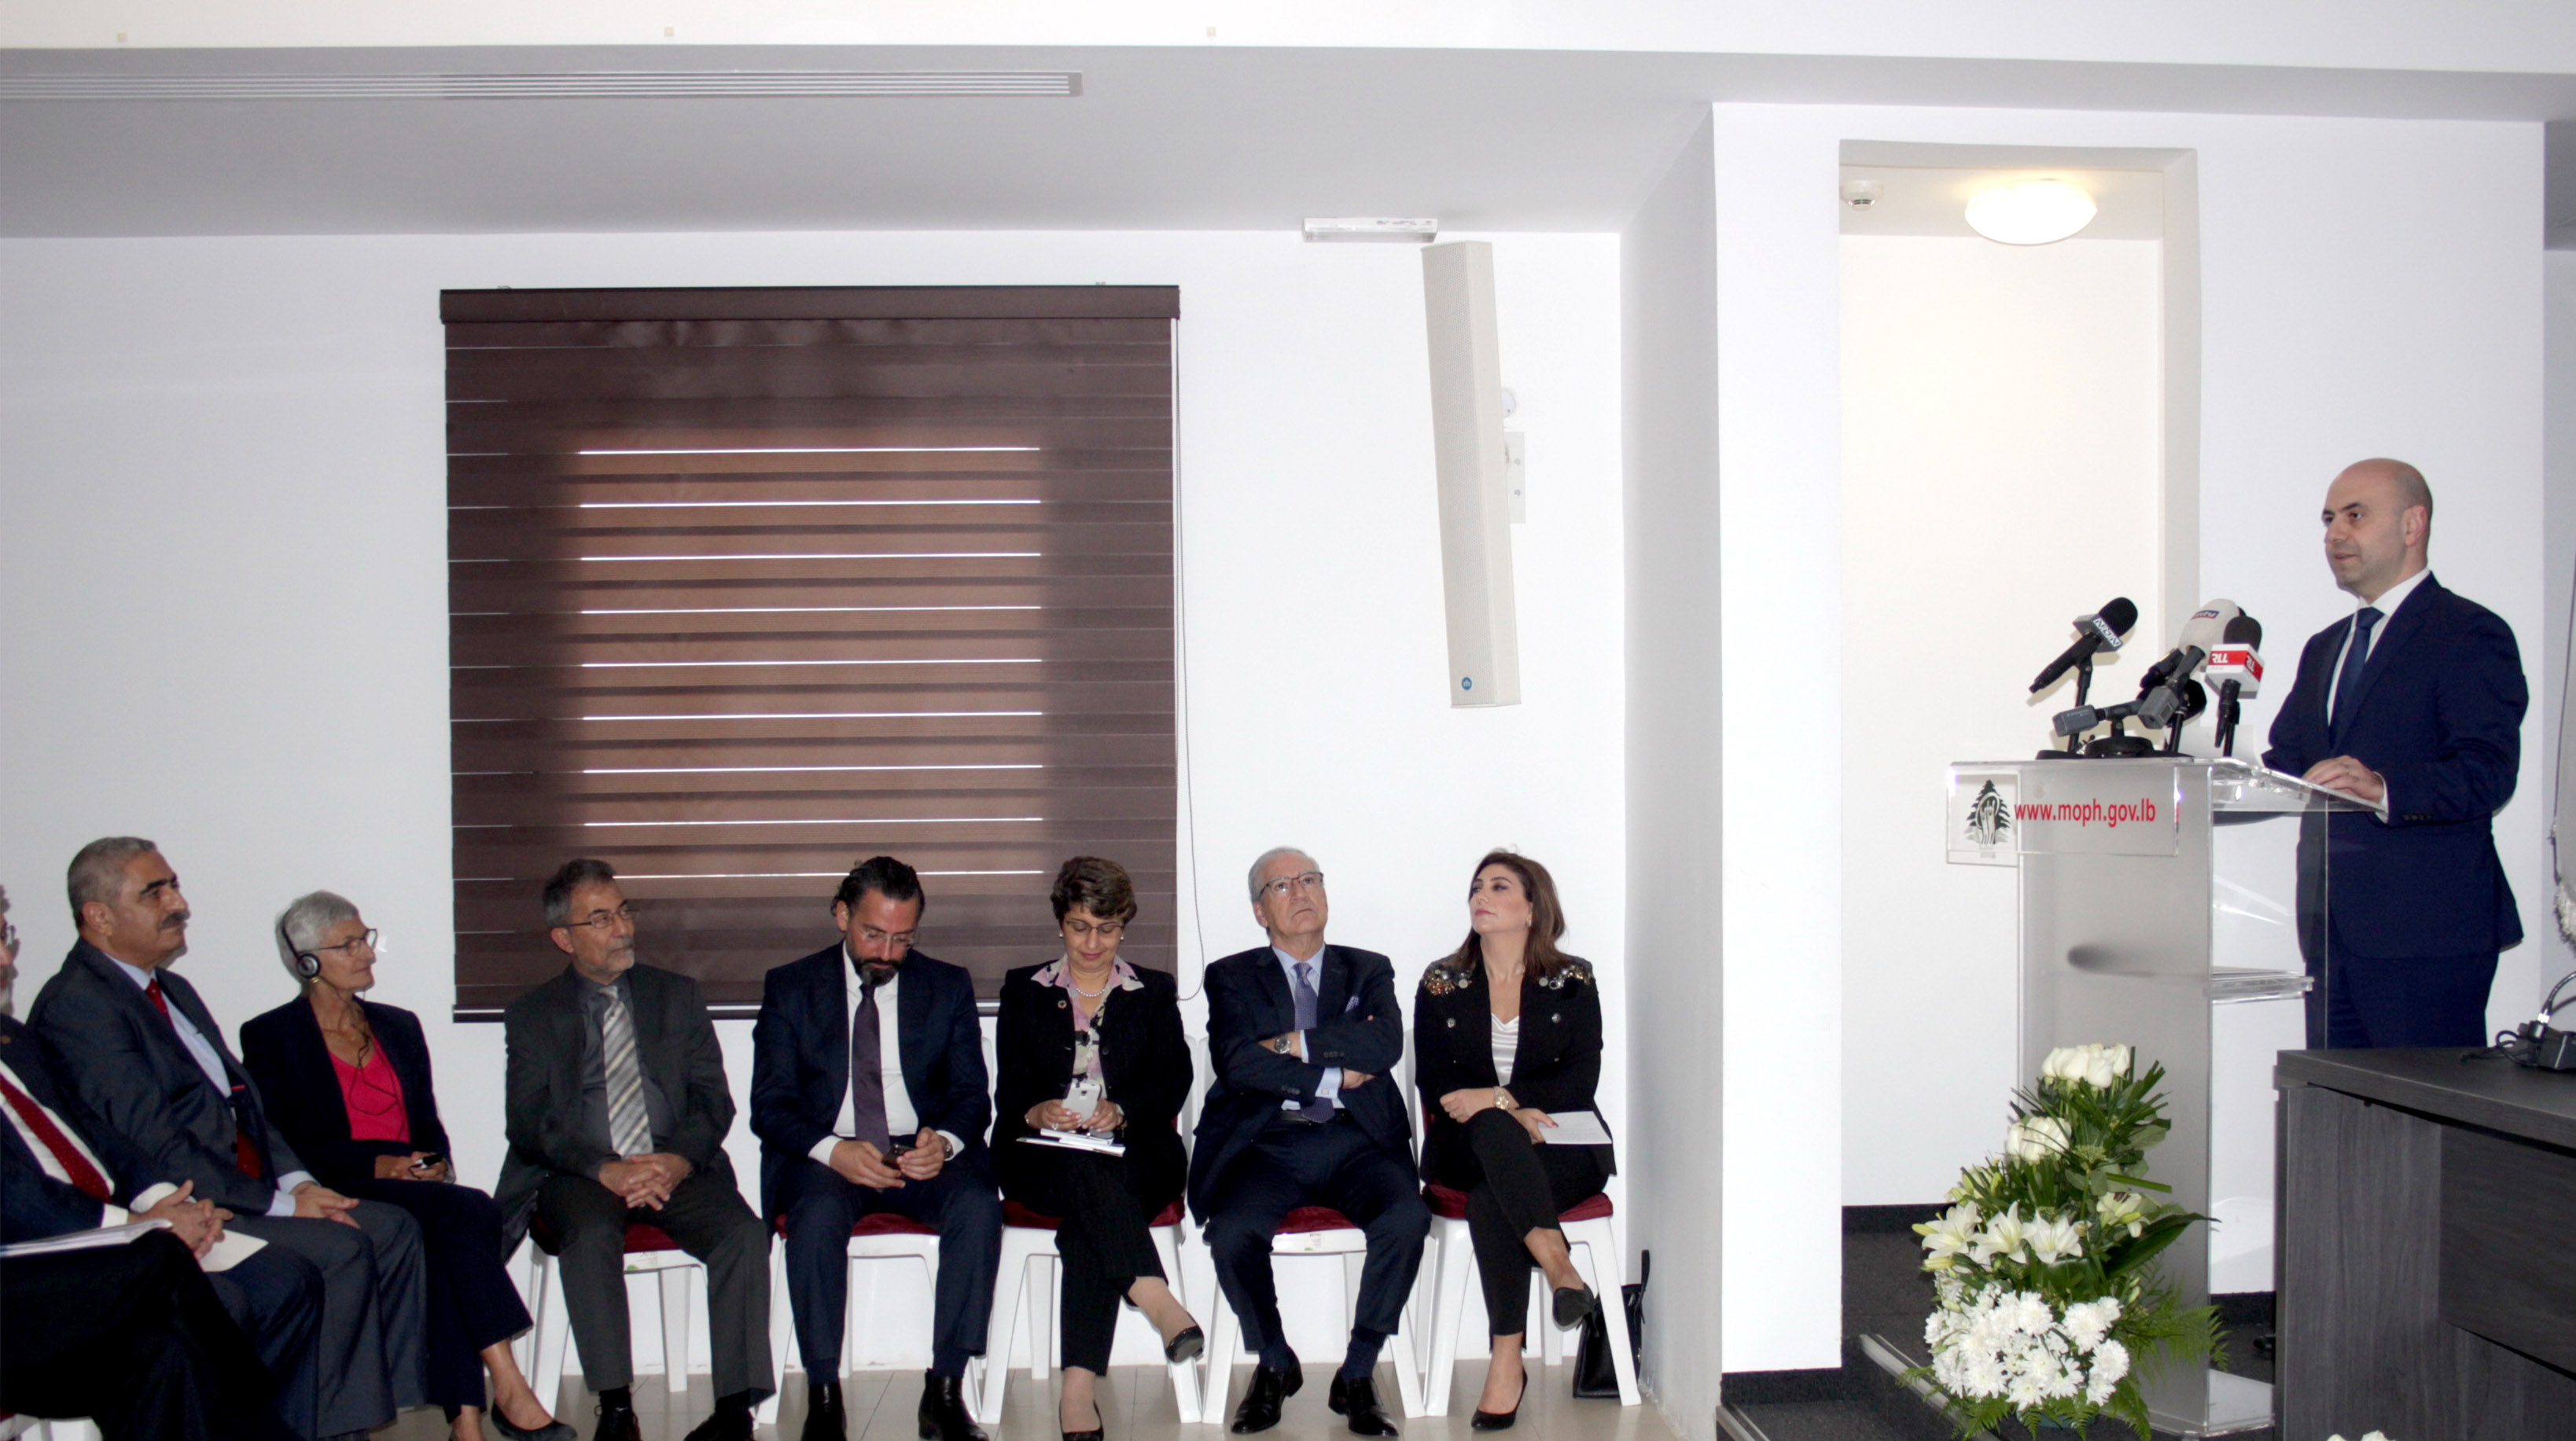 Minister Ghassan Hassbani Inaugurates a Section at the Ministry of Health 2